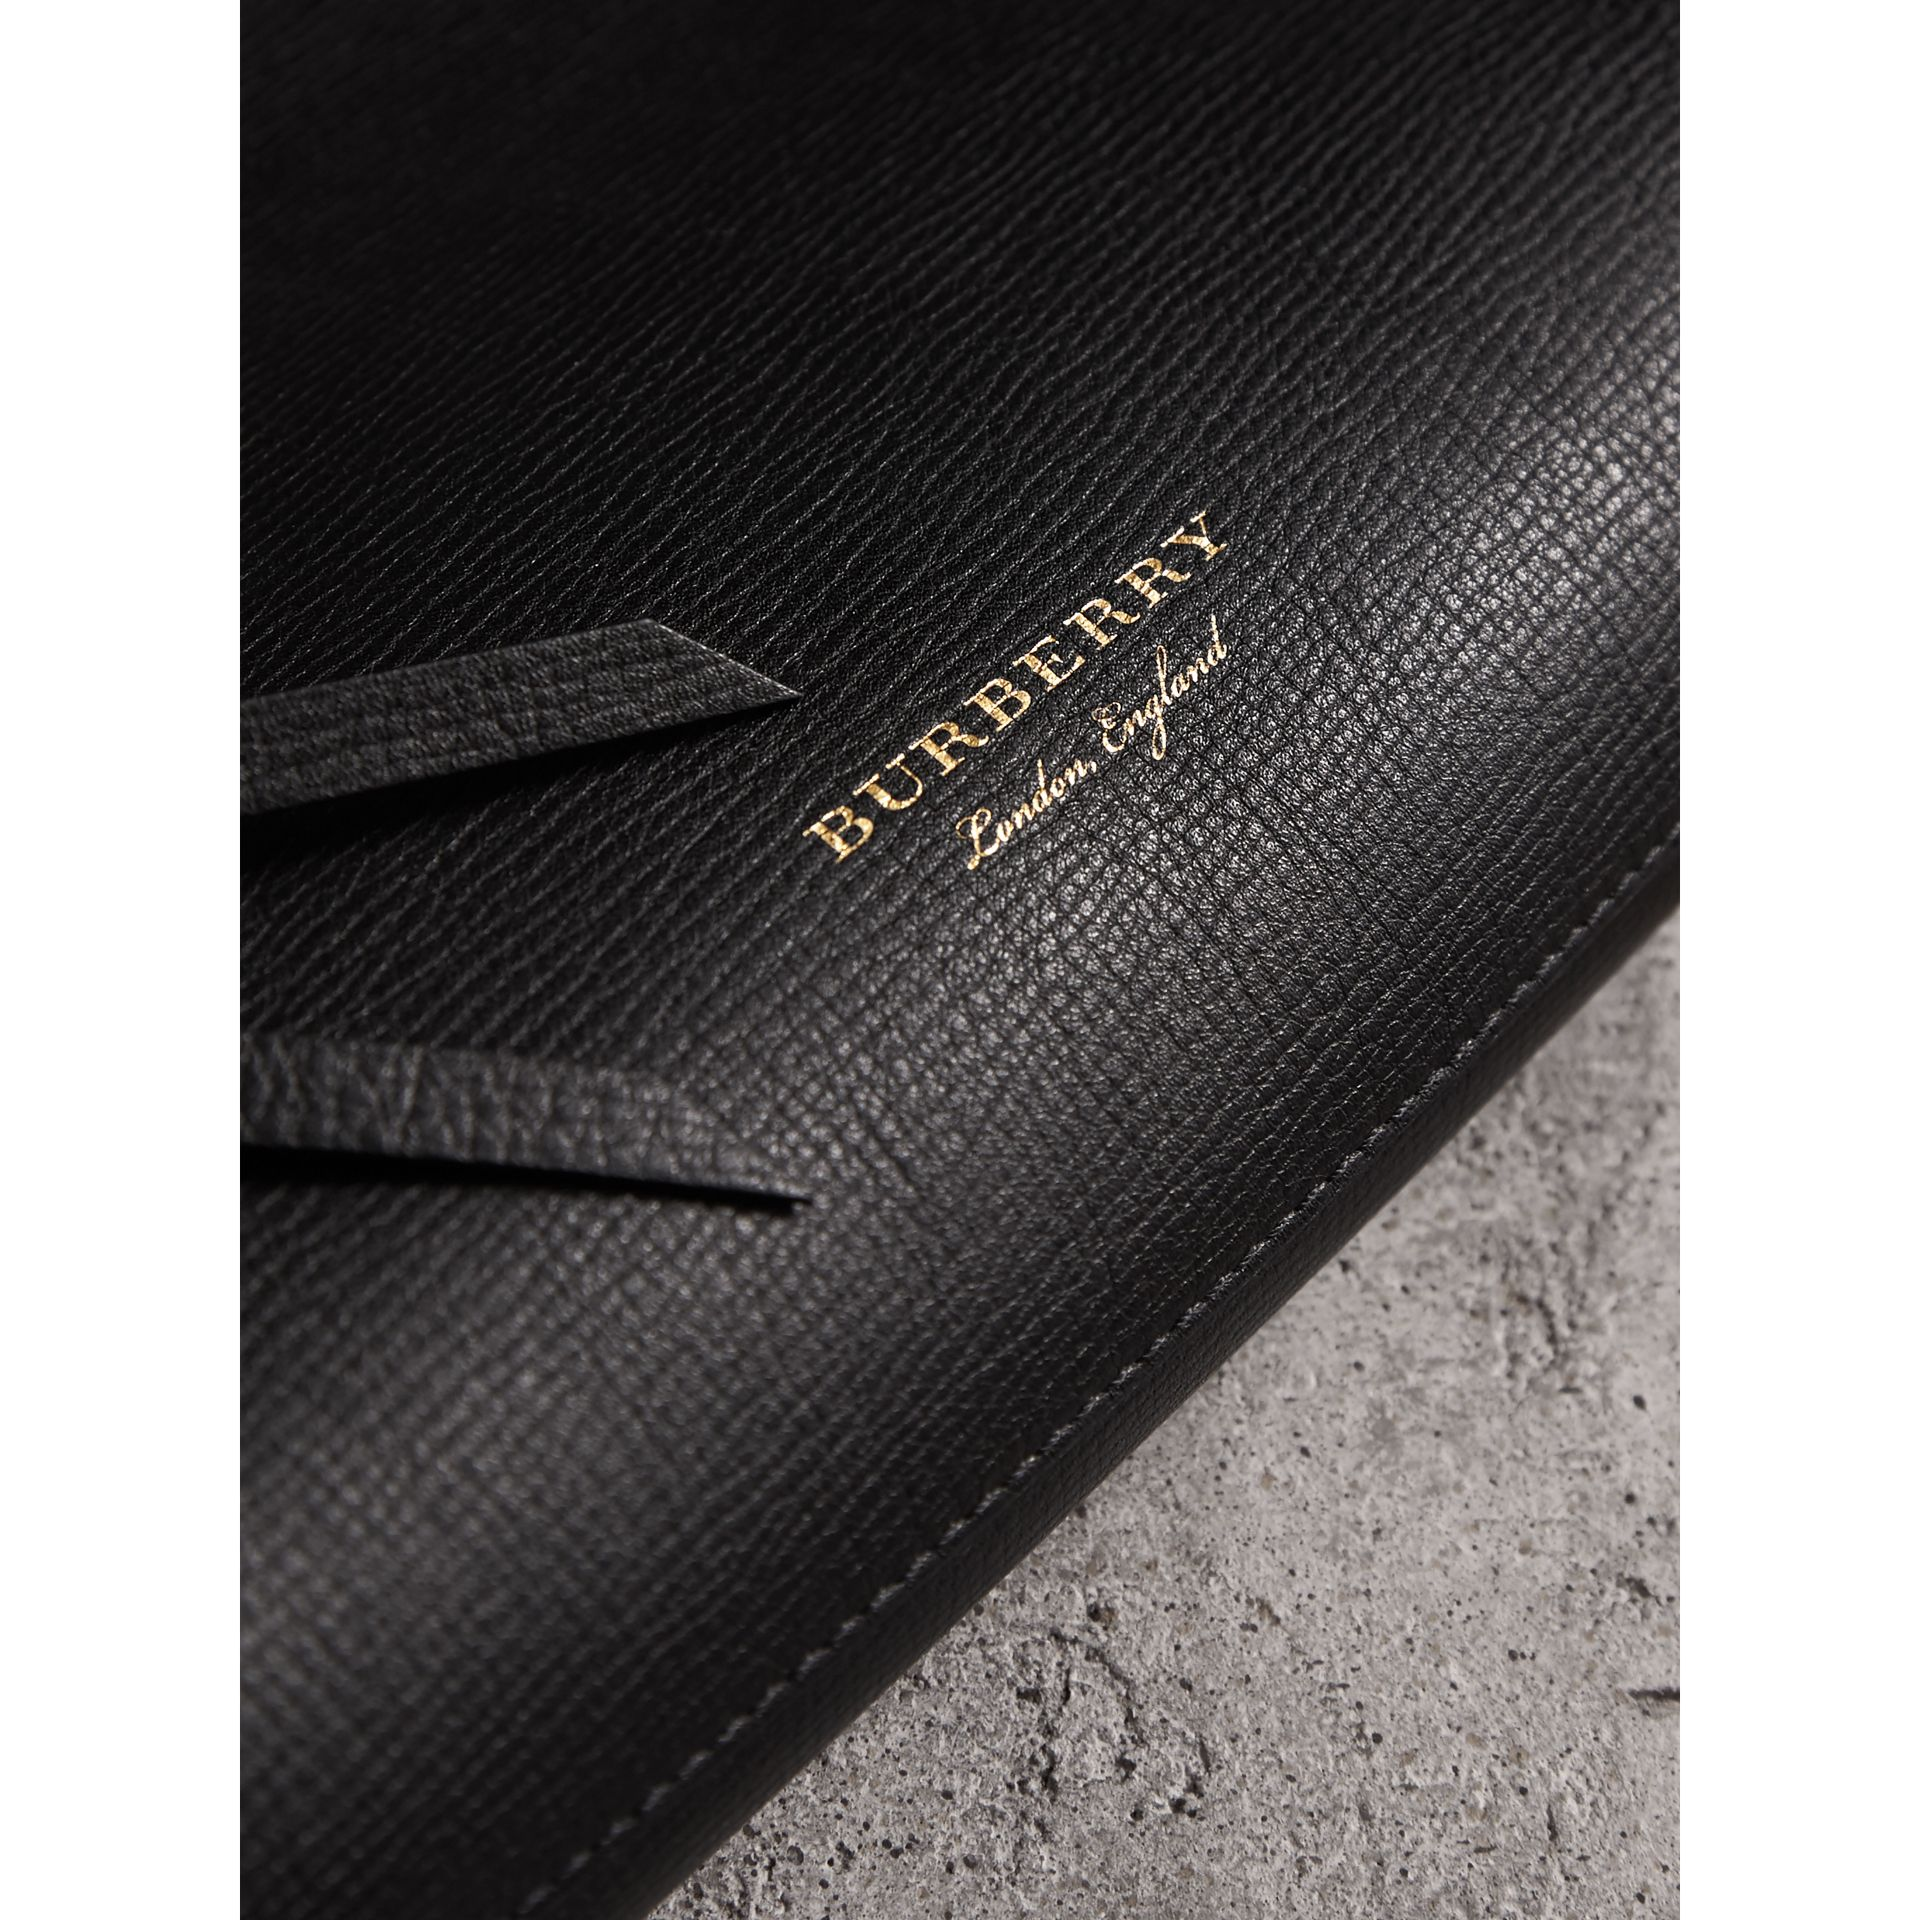 Grainy Leather Clutch Bag in Black - Women | Burberry - gallery image 2